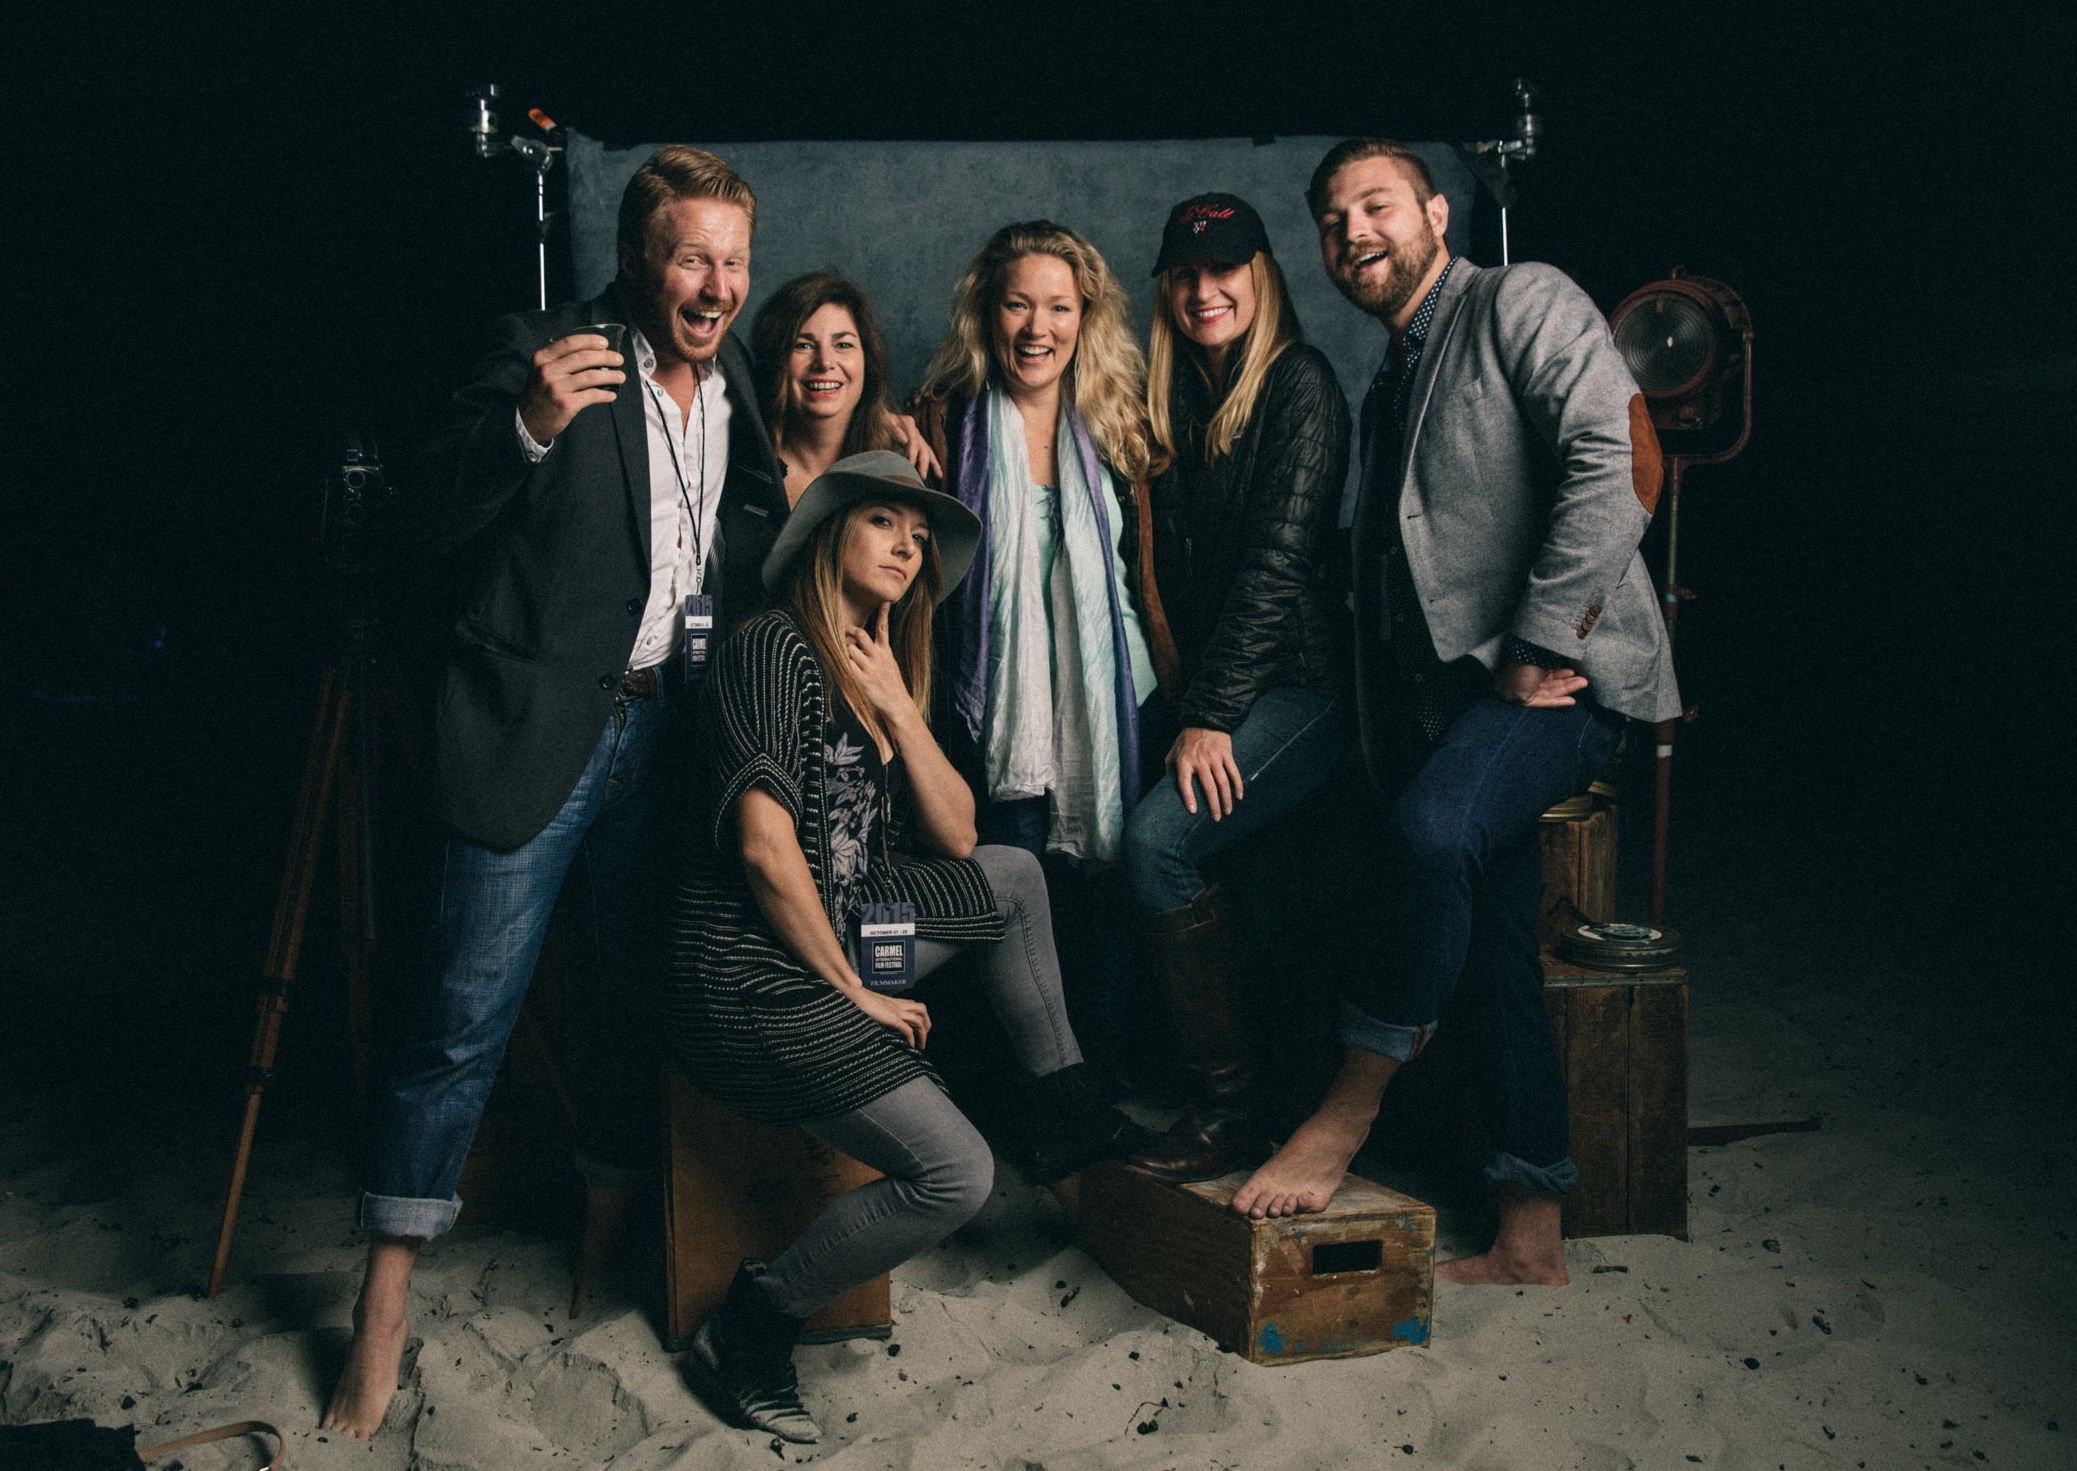 On the Beach with our Judges and Fellow Filmmakers at Carmel International Film Fest. PHOTO CREDIT: Marc Olivier Leblanc.